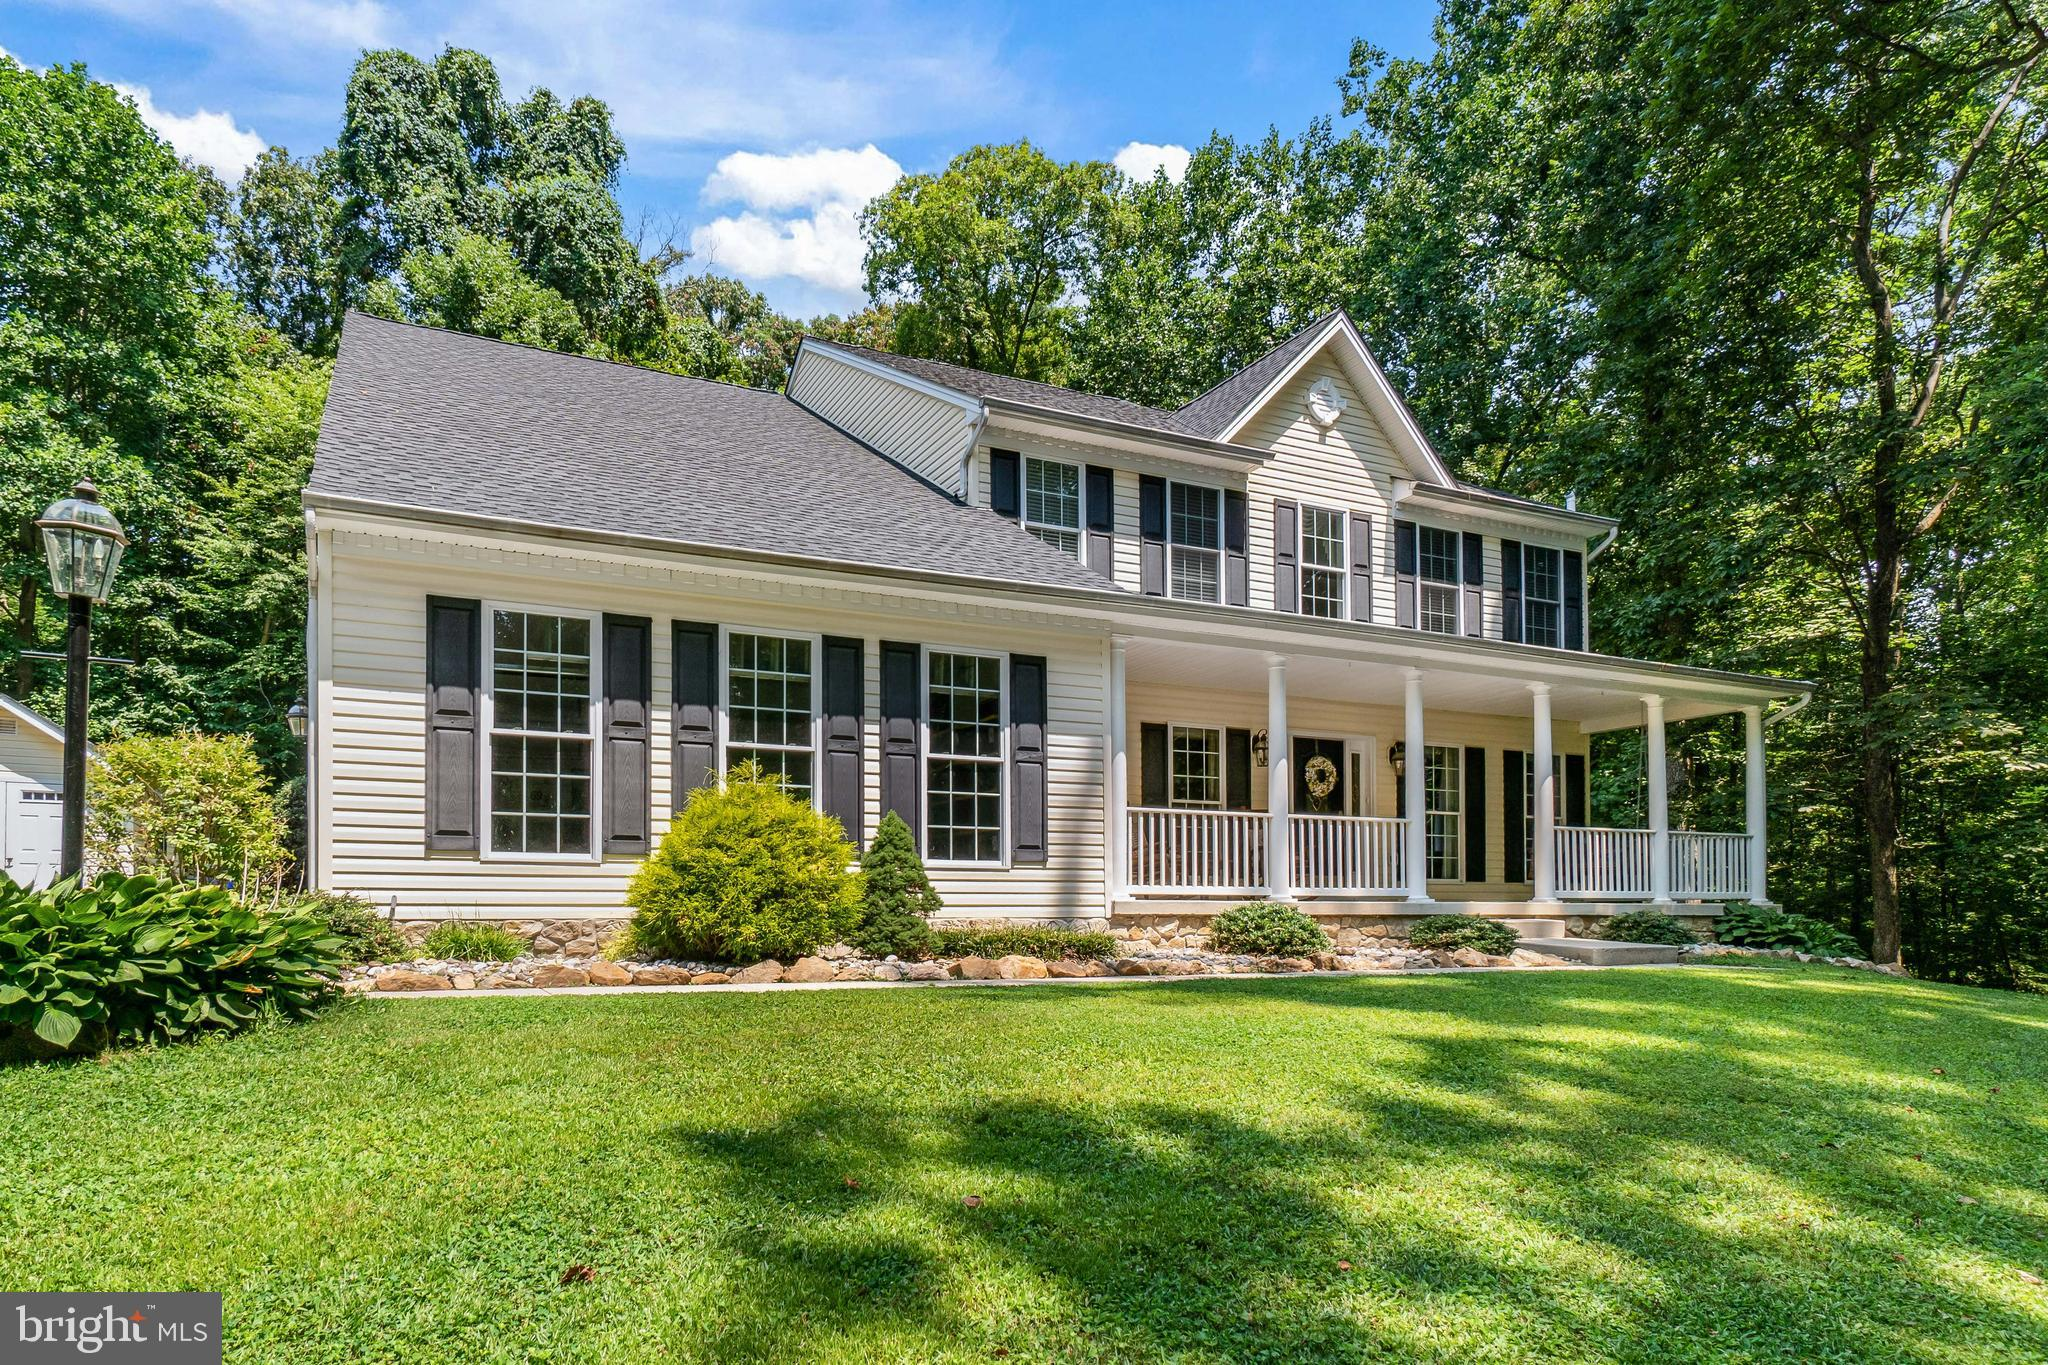 Over 4800 sq. ft. of finished living space in this 4-5 bedroom / 3 1/2 bath colonial constructed by